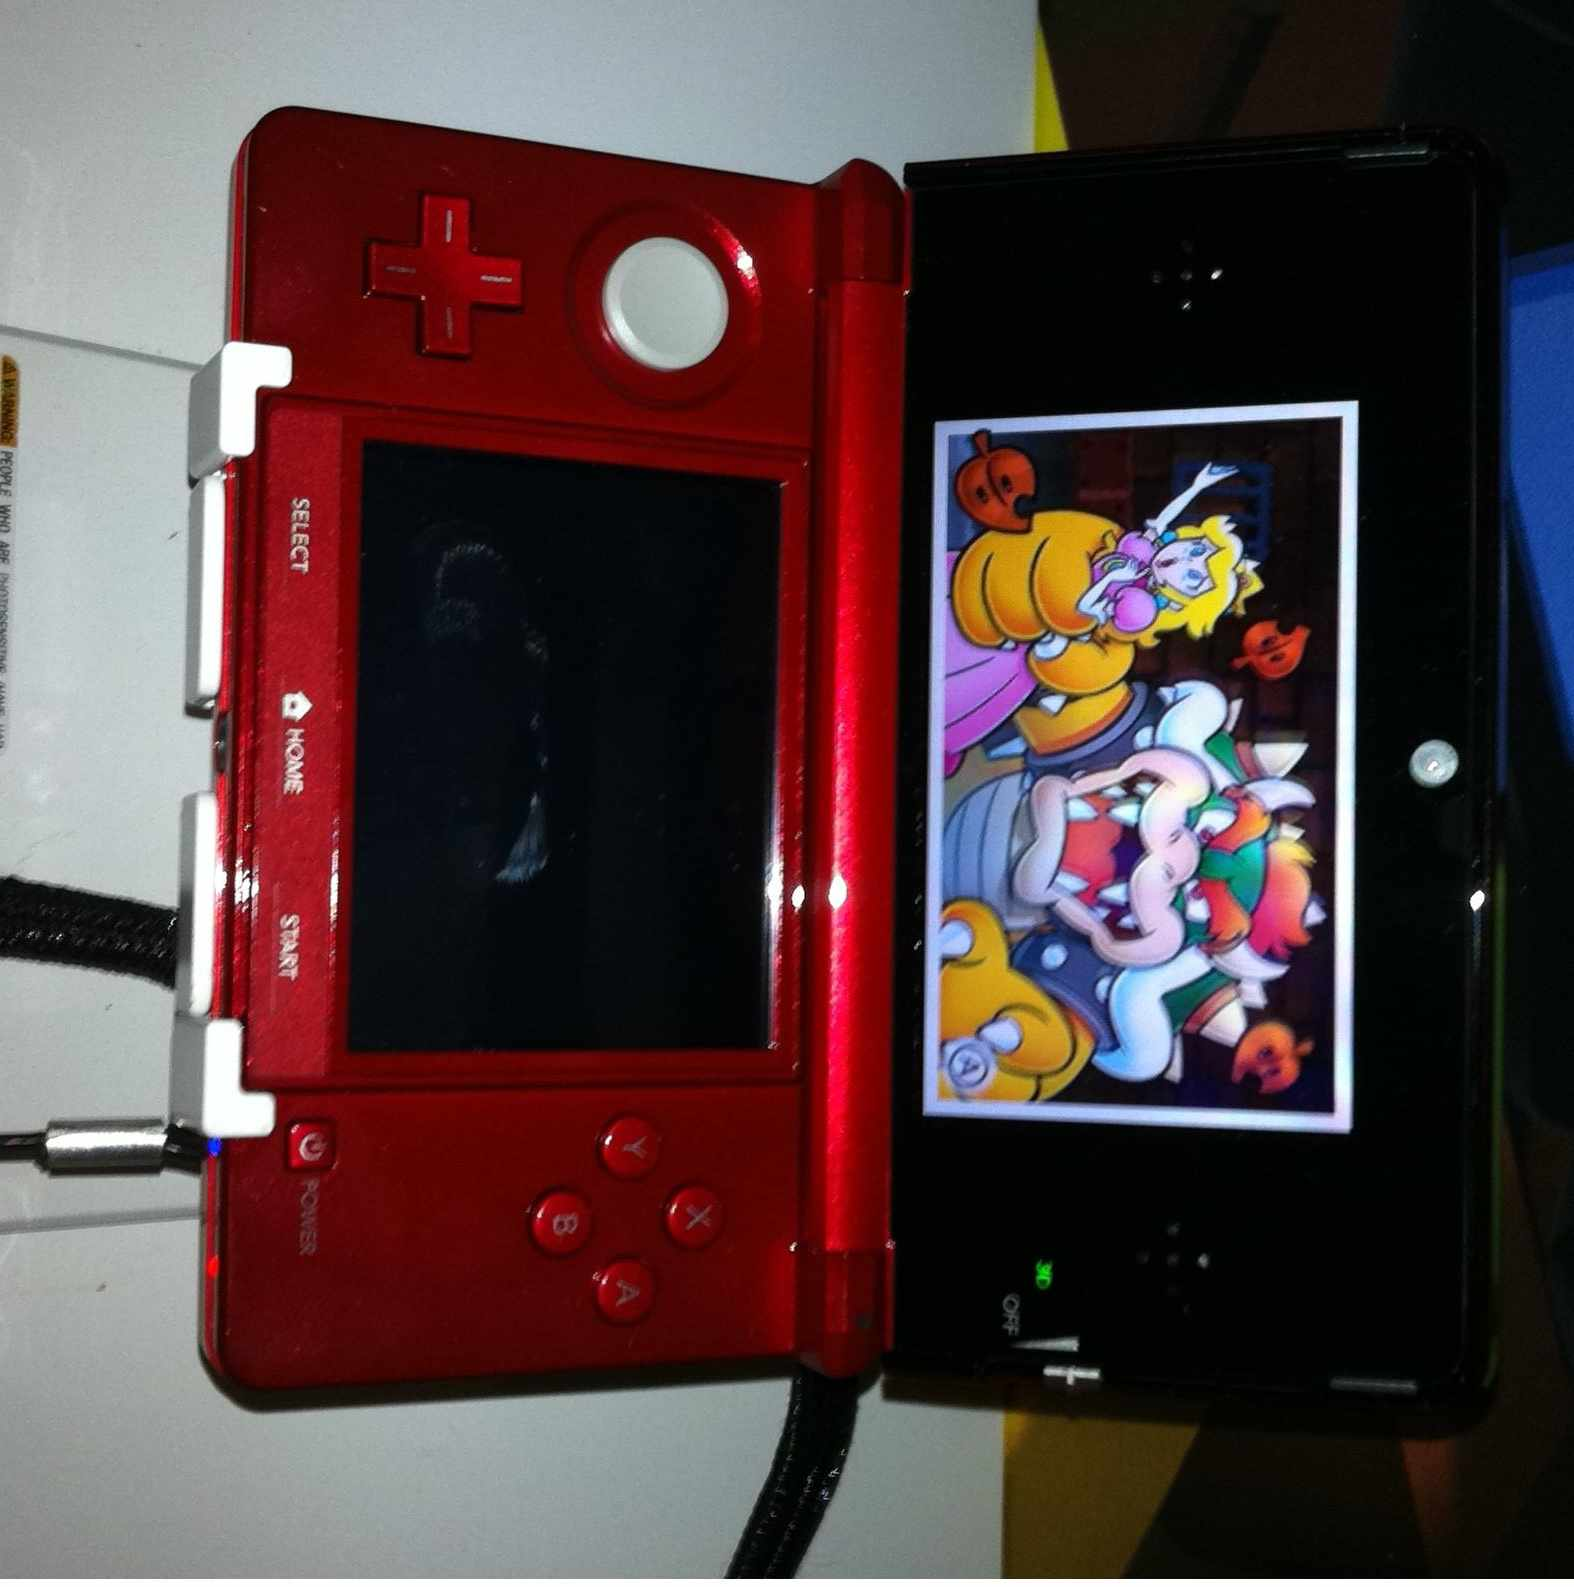 nintendo-3ds-gets-a-festive-update-in-time-for-christmas_28186